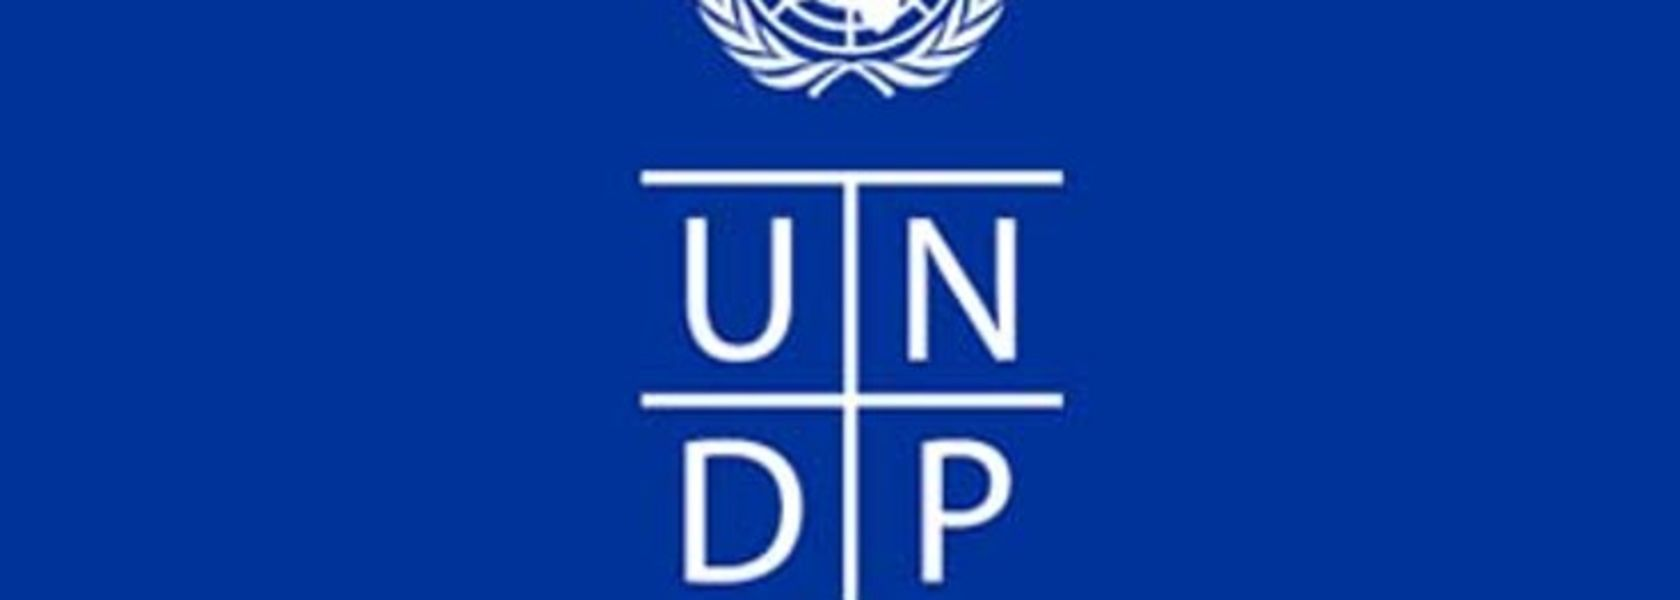 UNDP work survey aims to help PNG.